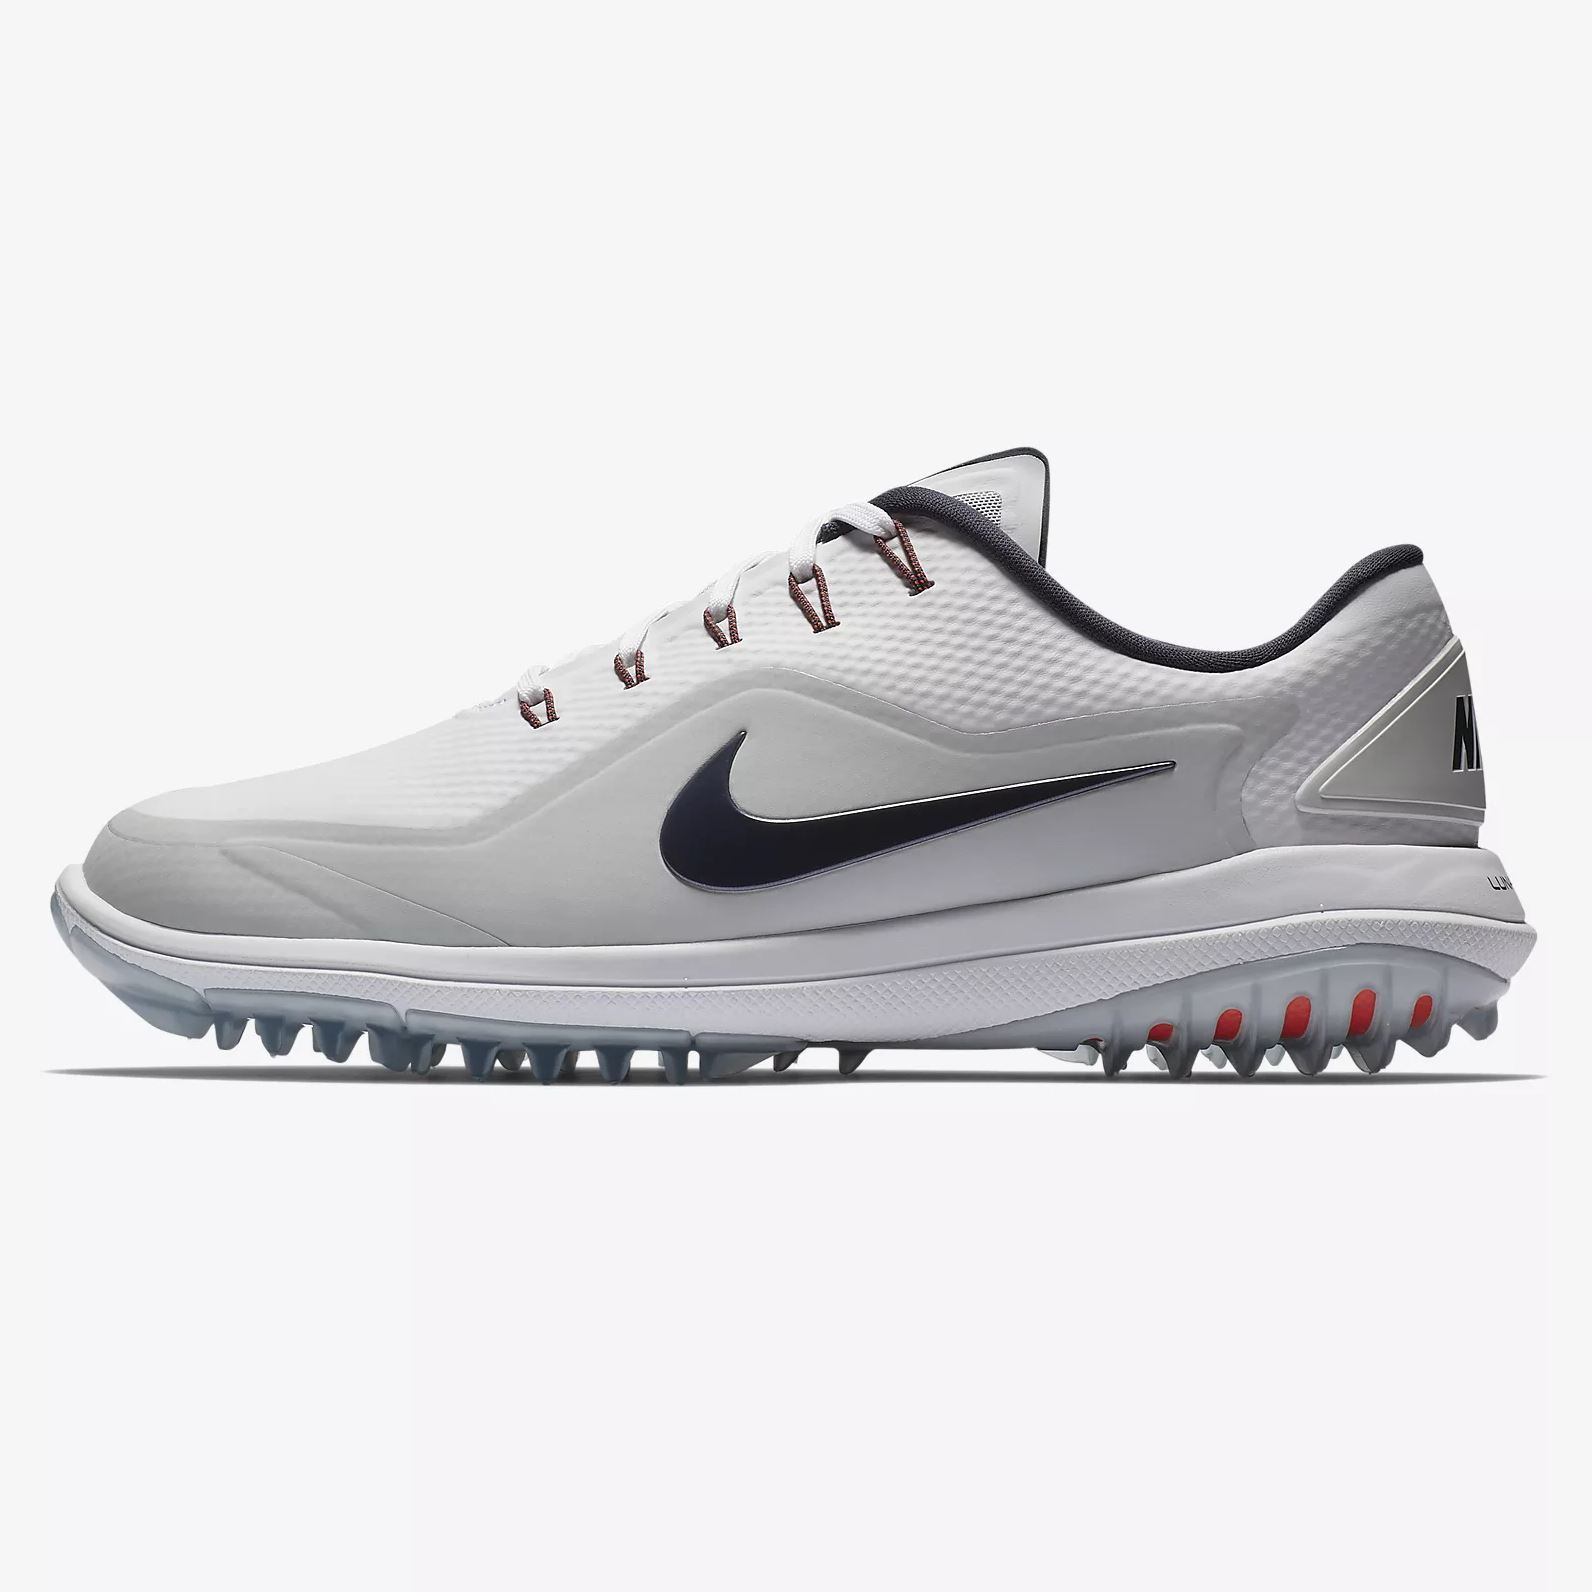 wholesale dealer 405ff f950a Picture of Nike Lunar Control Vapor 2 Golf Shoes - White Silver